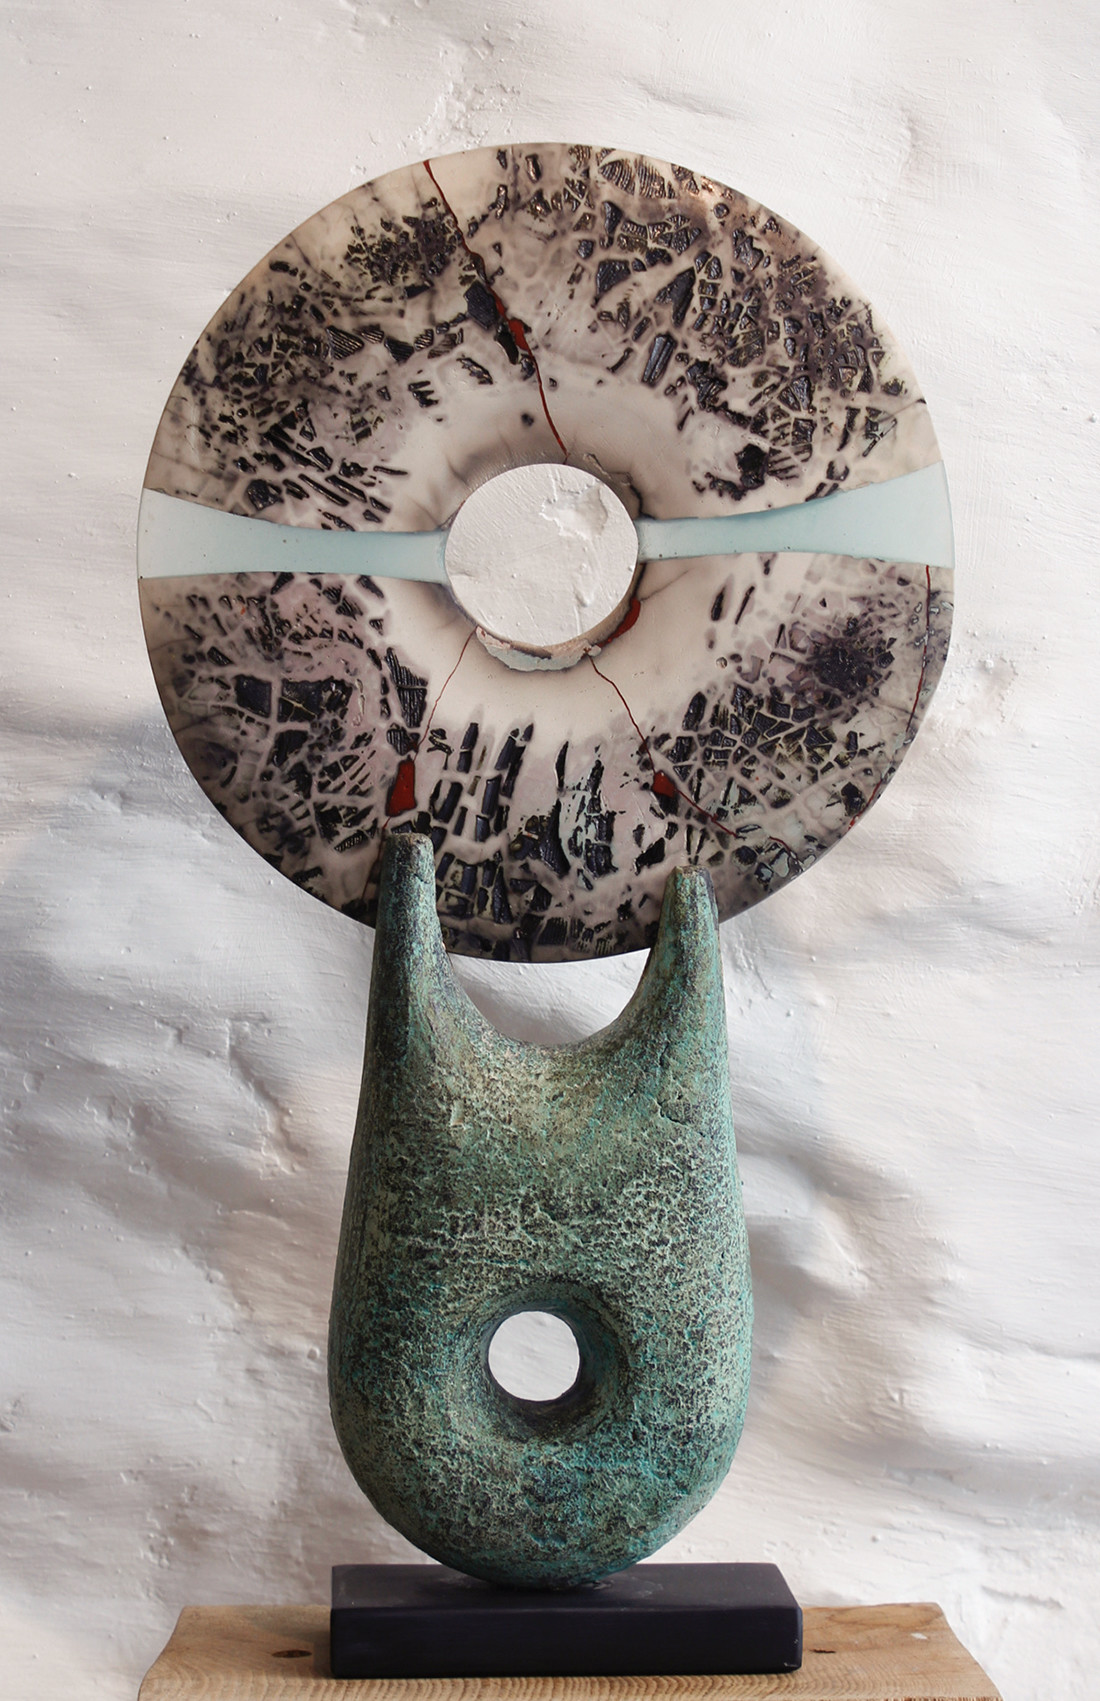 <span class=&#34;link fancybox-details-link&#34;><a href=&#34;/artists/40-peter-hayes/works/5650-peter-hayes-raku-disc-2018/&#34;>View Detail Page</a></span><div class=&#34;artist&#34;><strong>Peter Hayes</strong></div> <div class=&#34;title&#34;><em>Raku Disc</em>, 2018</div> <div class=&#34;signed_and_dated&#34;>signed on base</div> <div class=&#34;medium&#34;>stoneware</div> <div class=&#34;dimensions&#34;>45.7 x 22.9 cm<br /> 18 x 9 inches</div><div class=&#34;copyright_line&#34;>OwnArt: £ 75 x 10 Months, 0% APR</div>